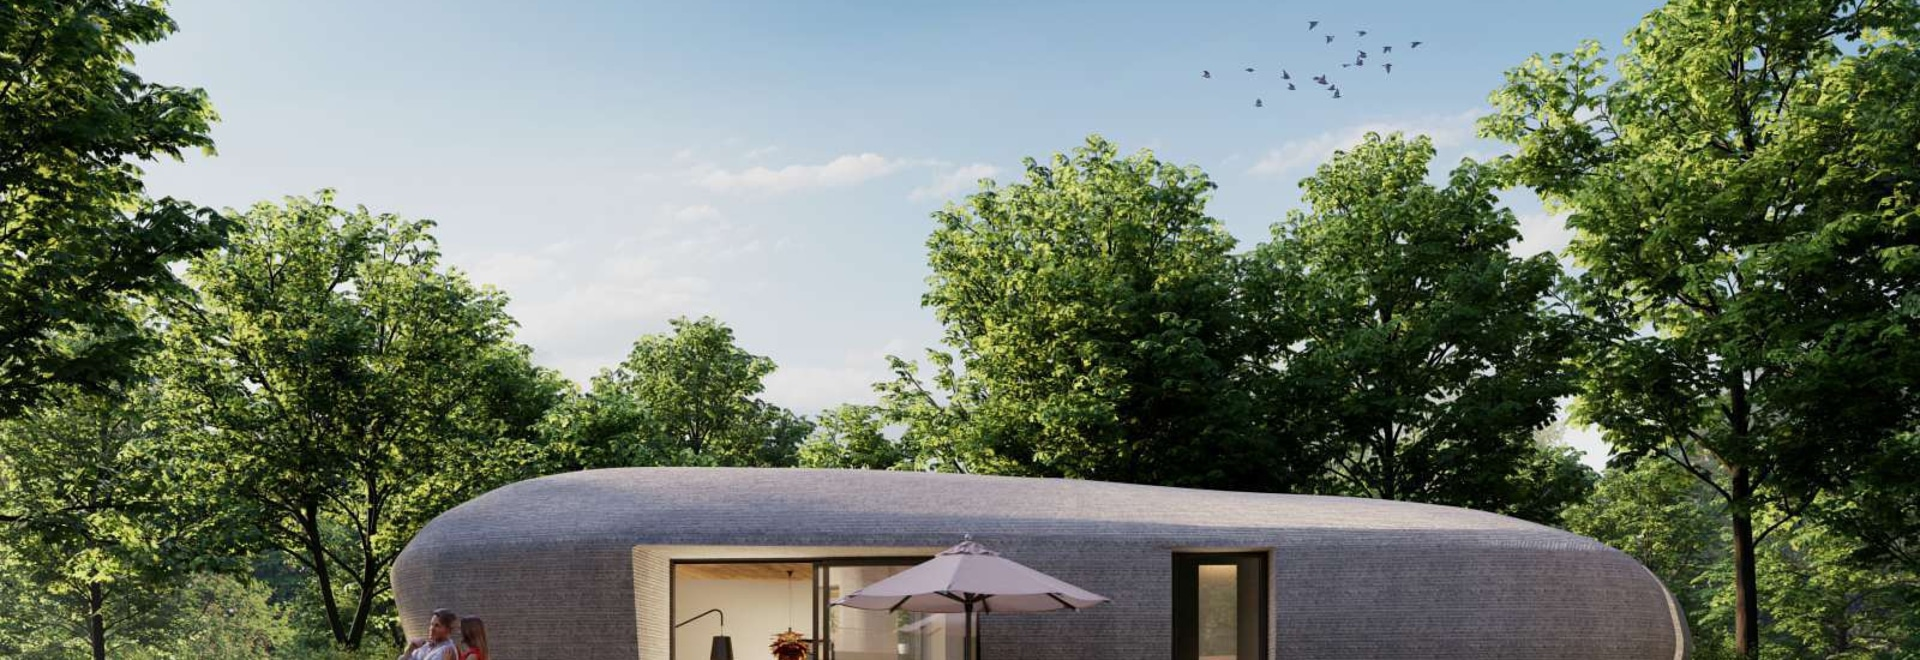 Making a 3D-Printed House into a Home